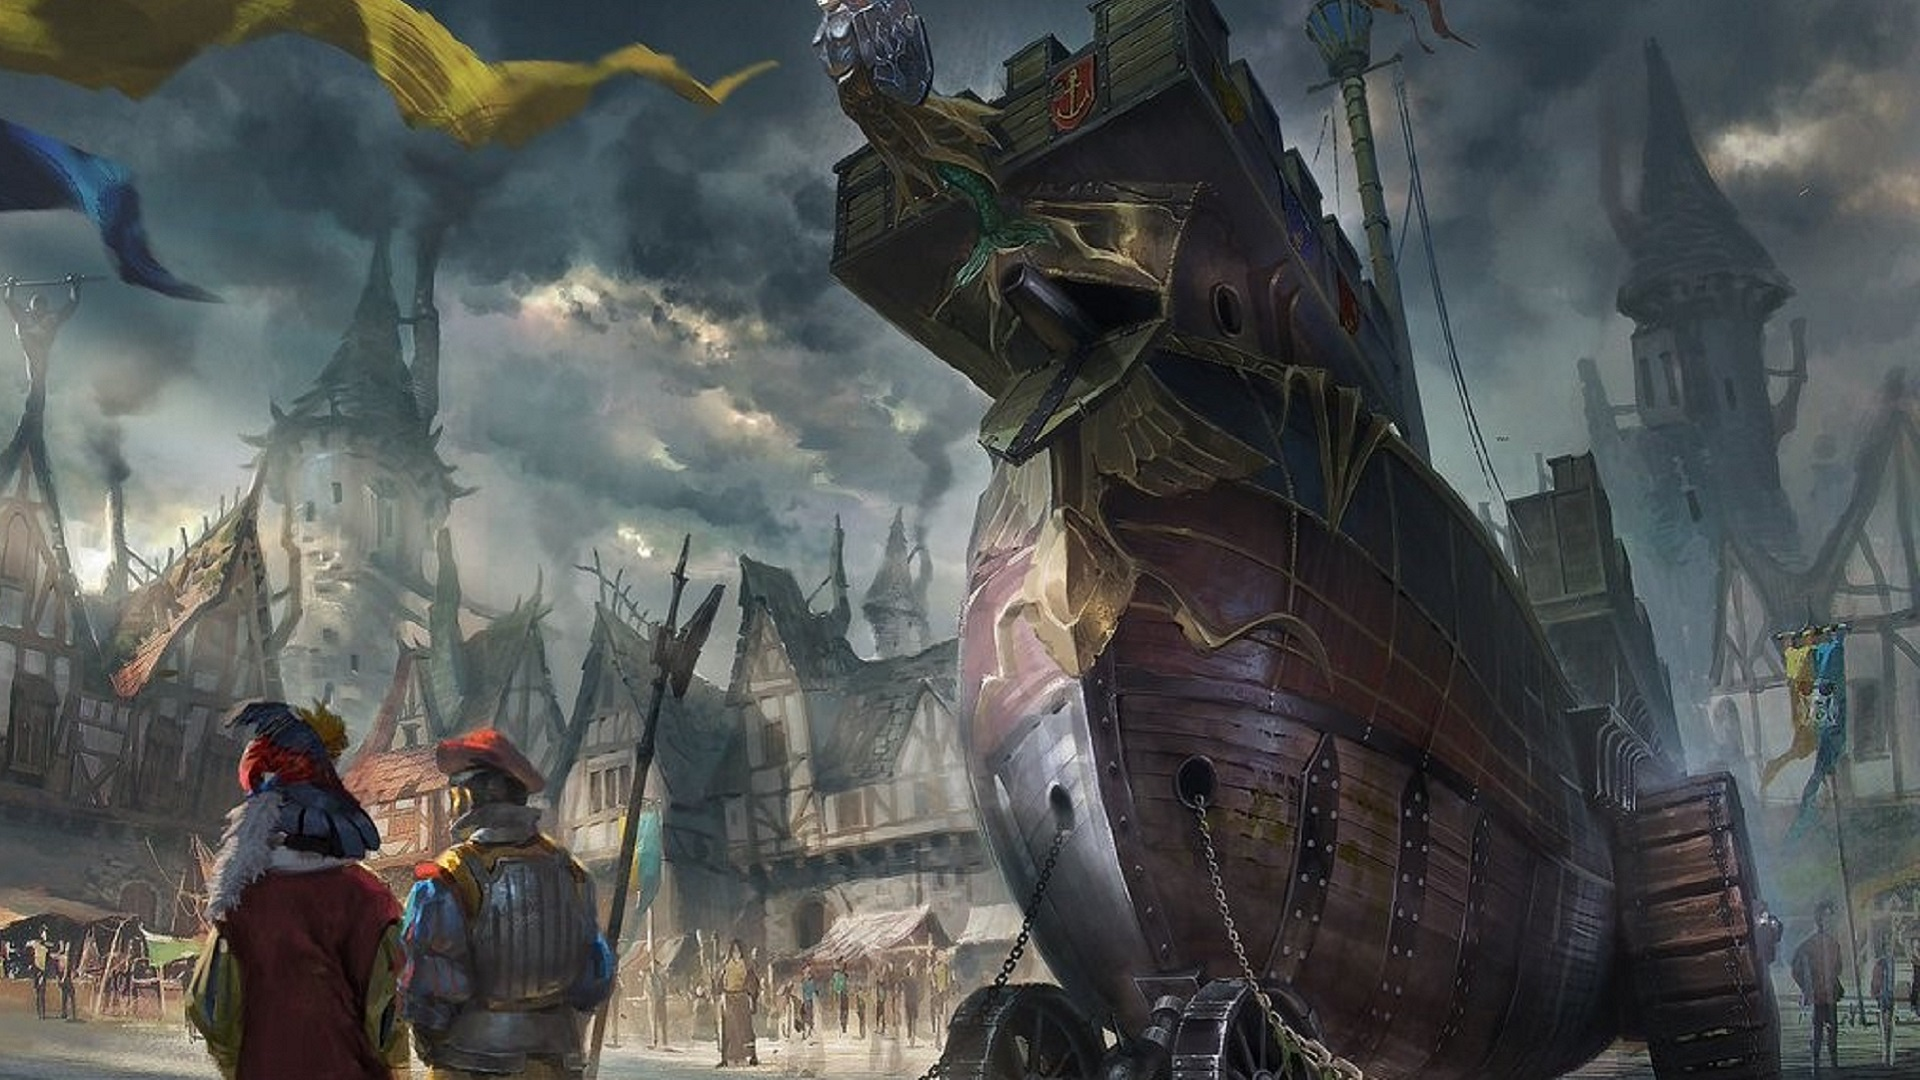 Mobile MMORPG Warhammer: Odyssey's new trailer is a call for heroes